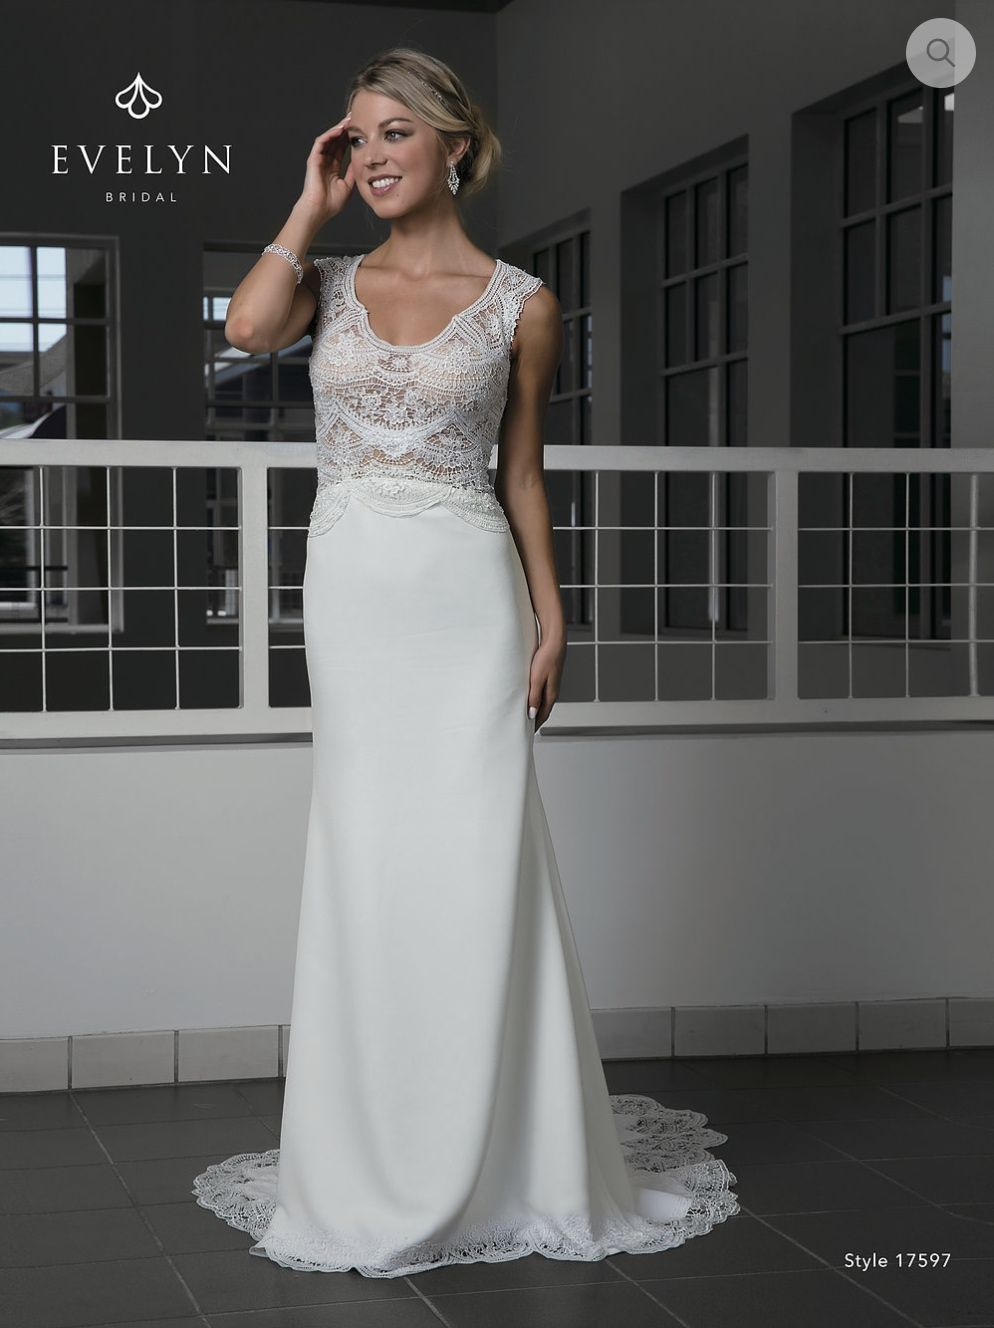 Vera wang wedding dress rental  Emmalee Lace with the crepe fabric  Available at Adore